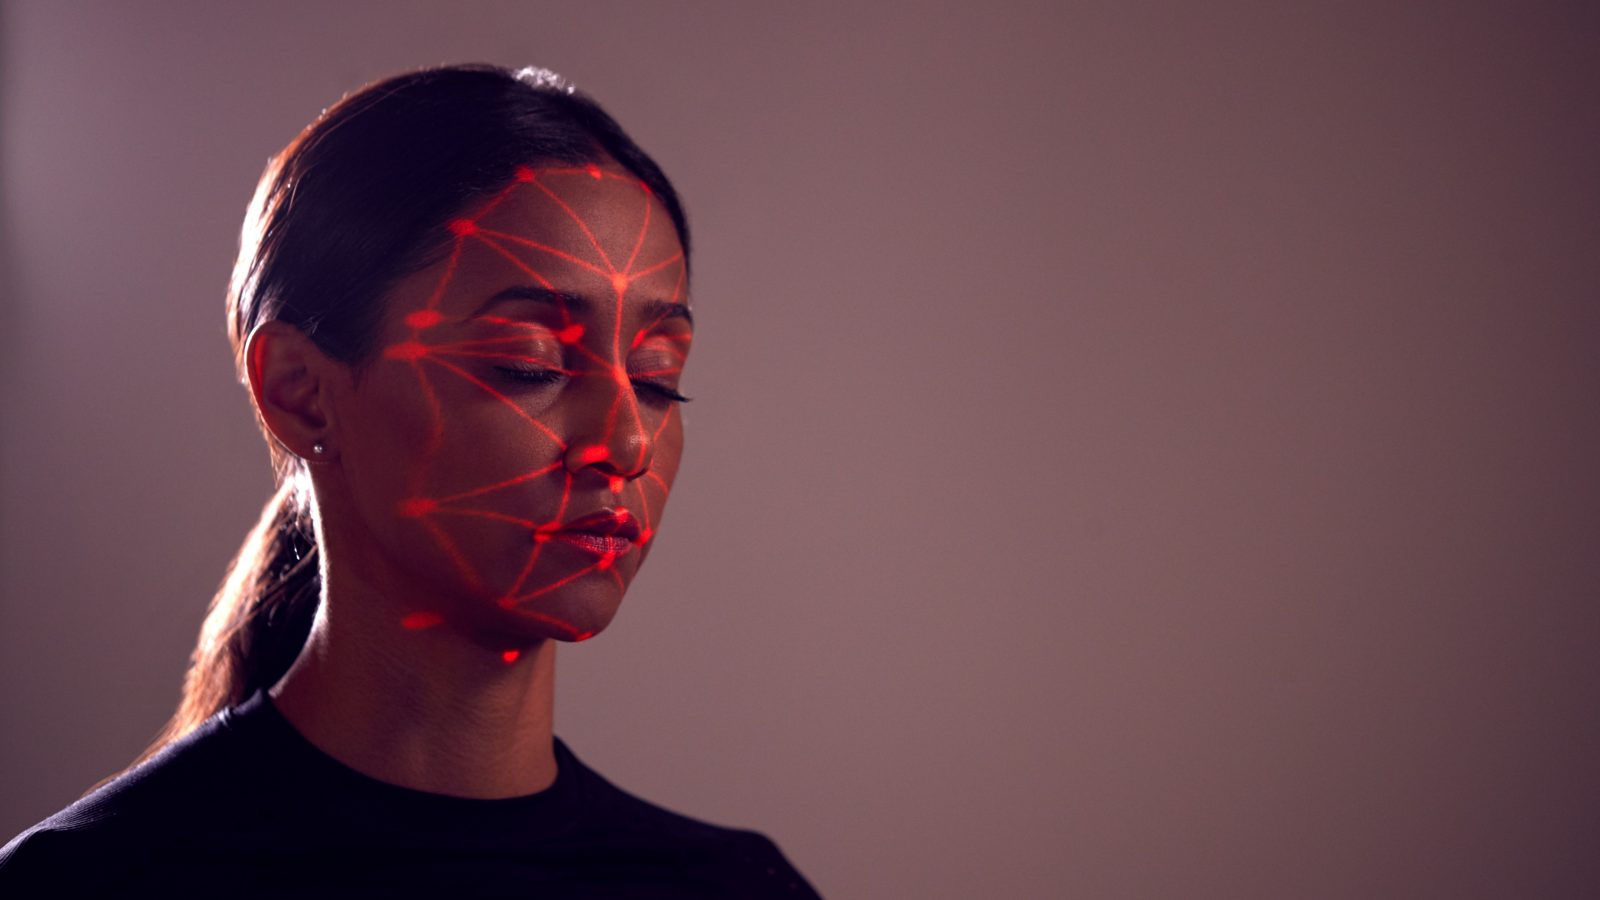 Image shows a woman's face with her face being scanned by red laser lights.